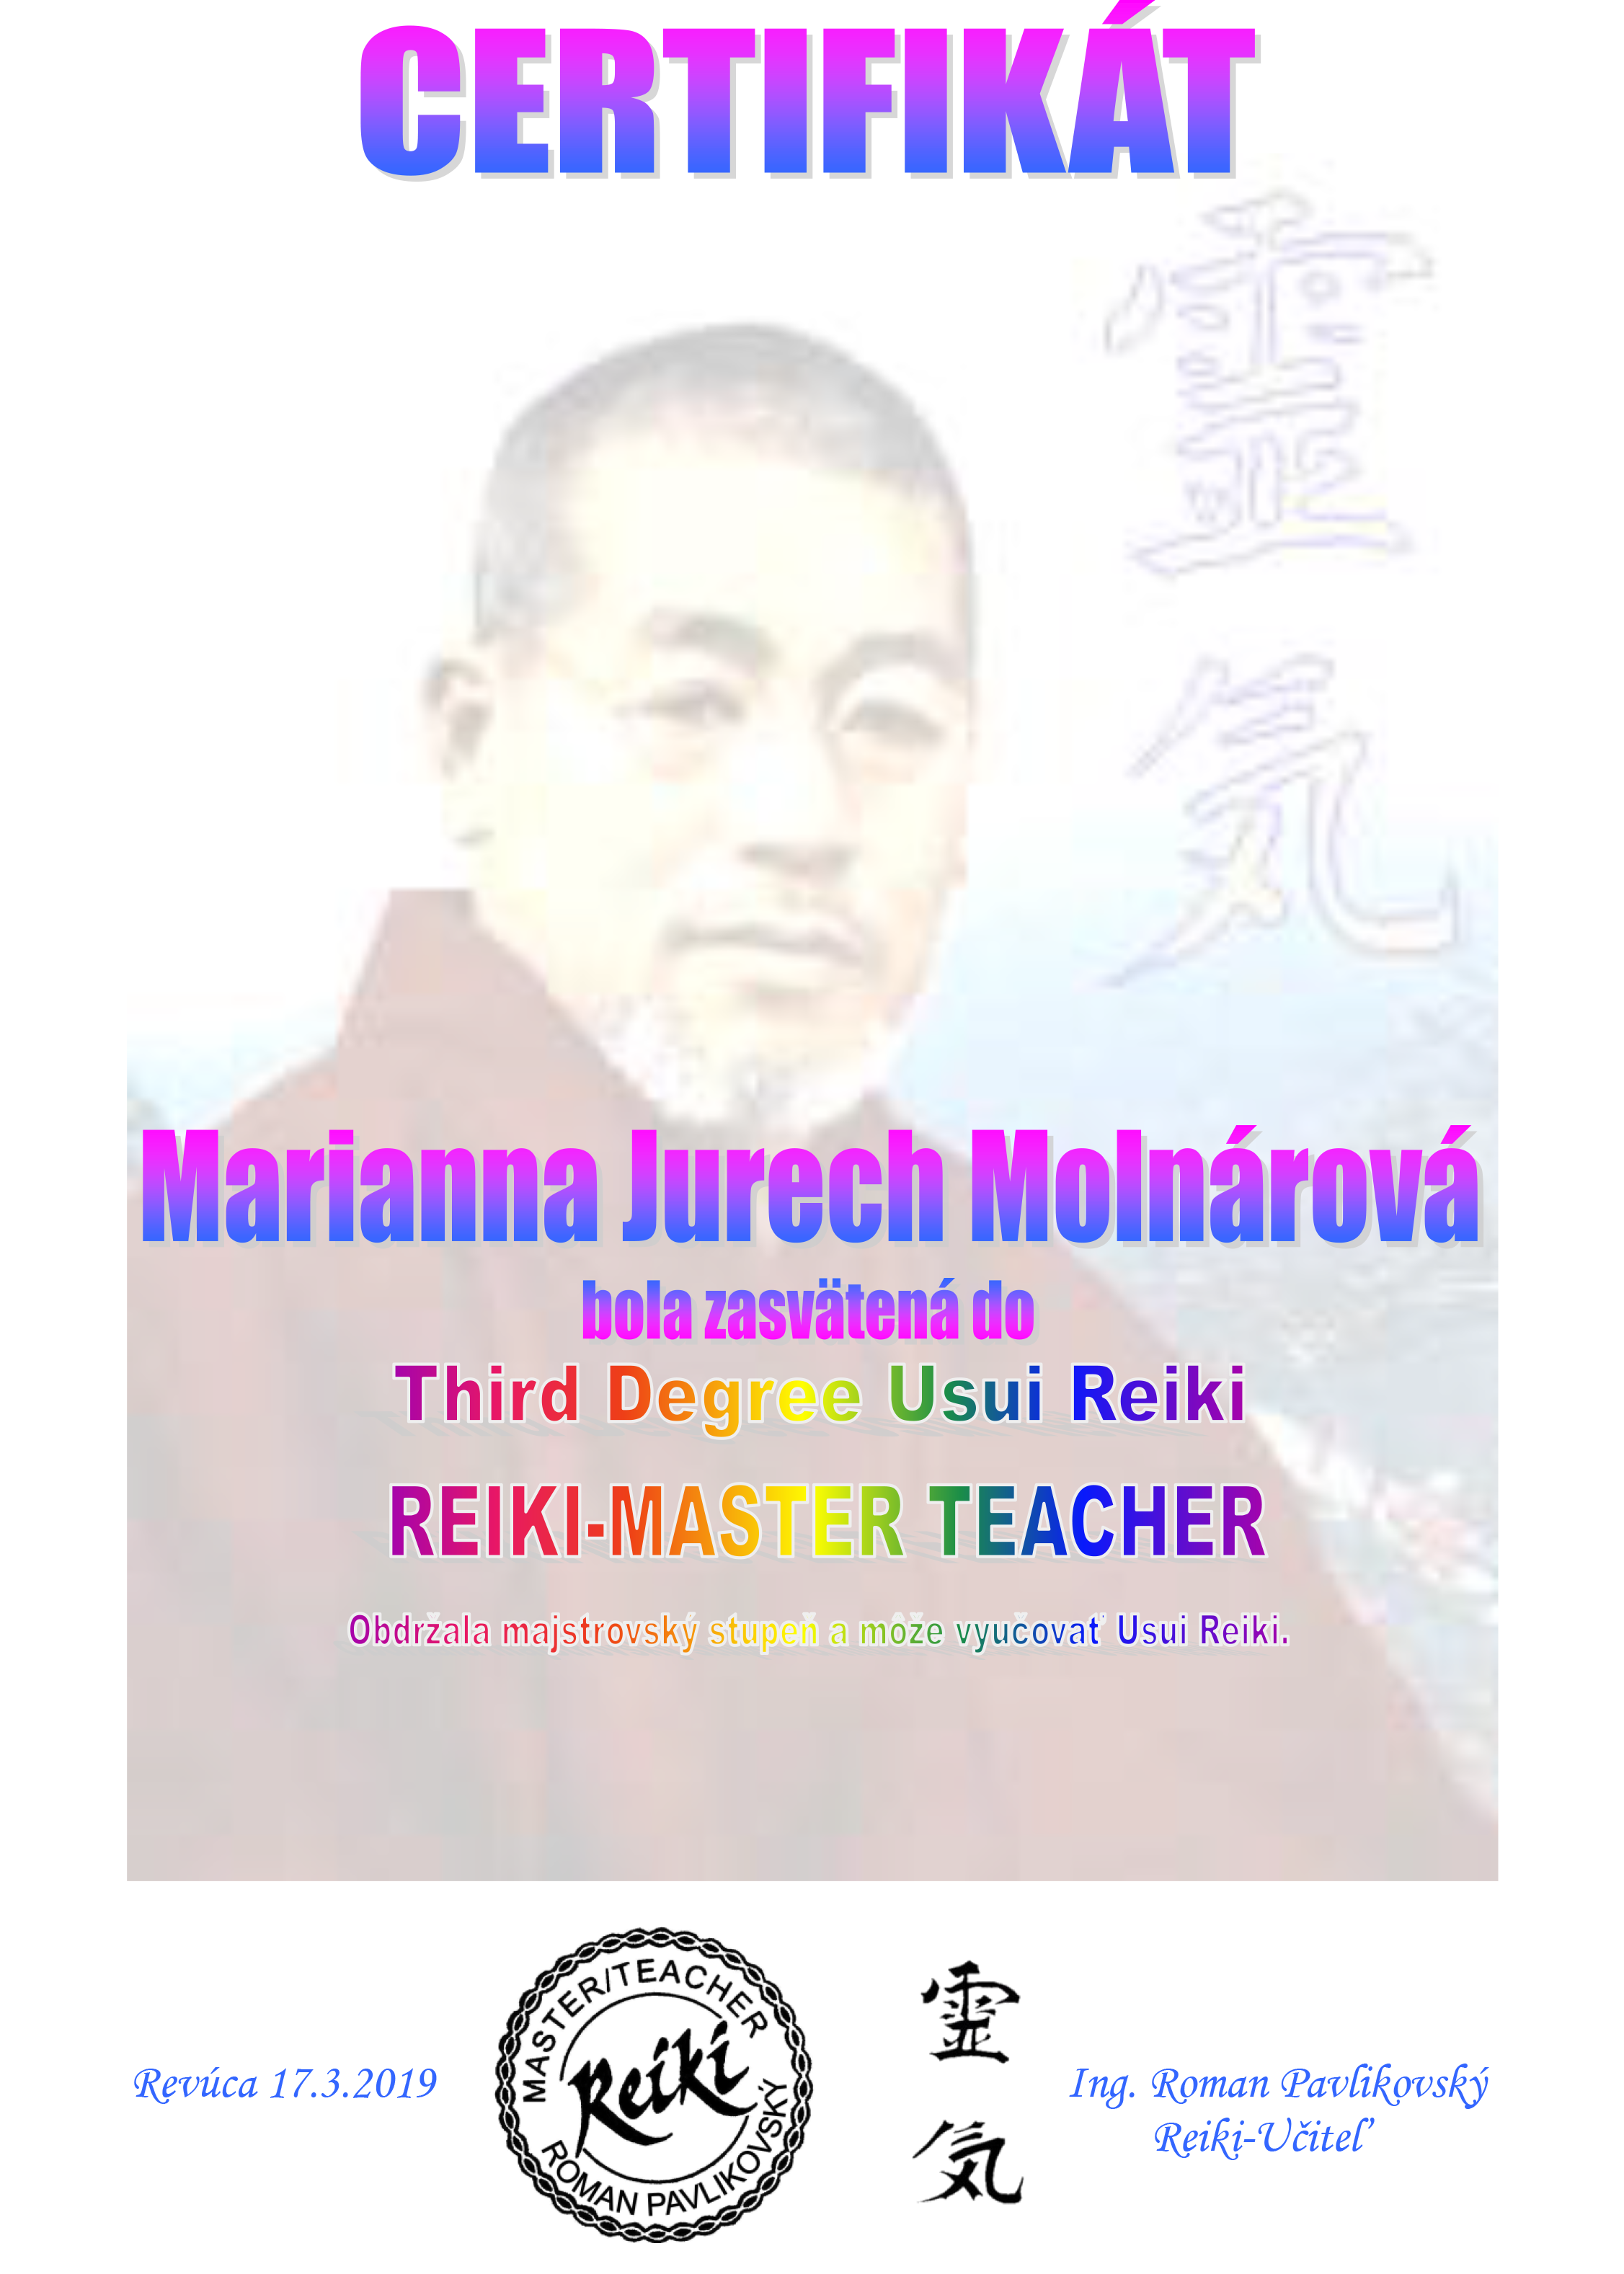 reiki teacher